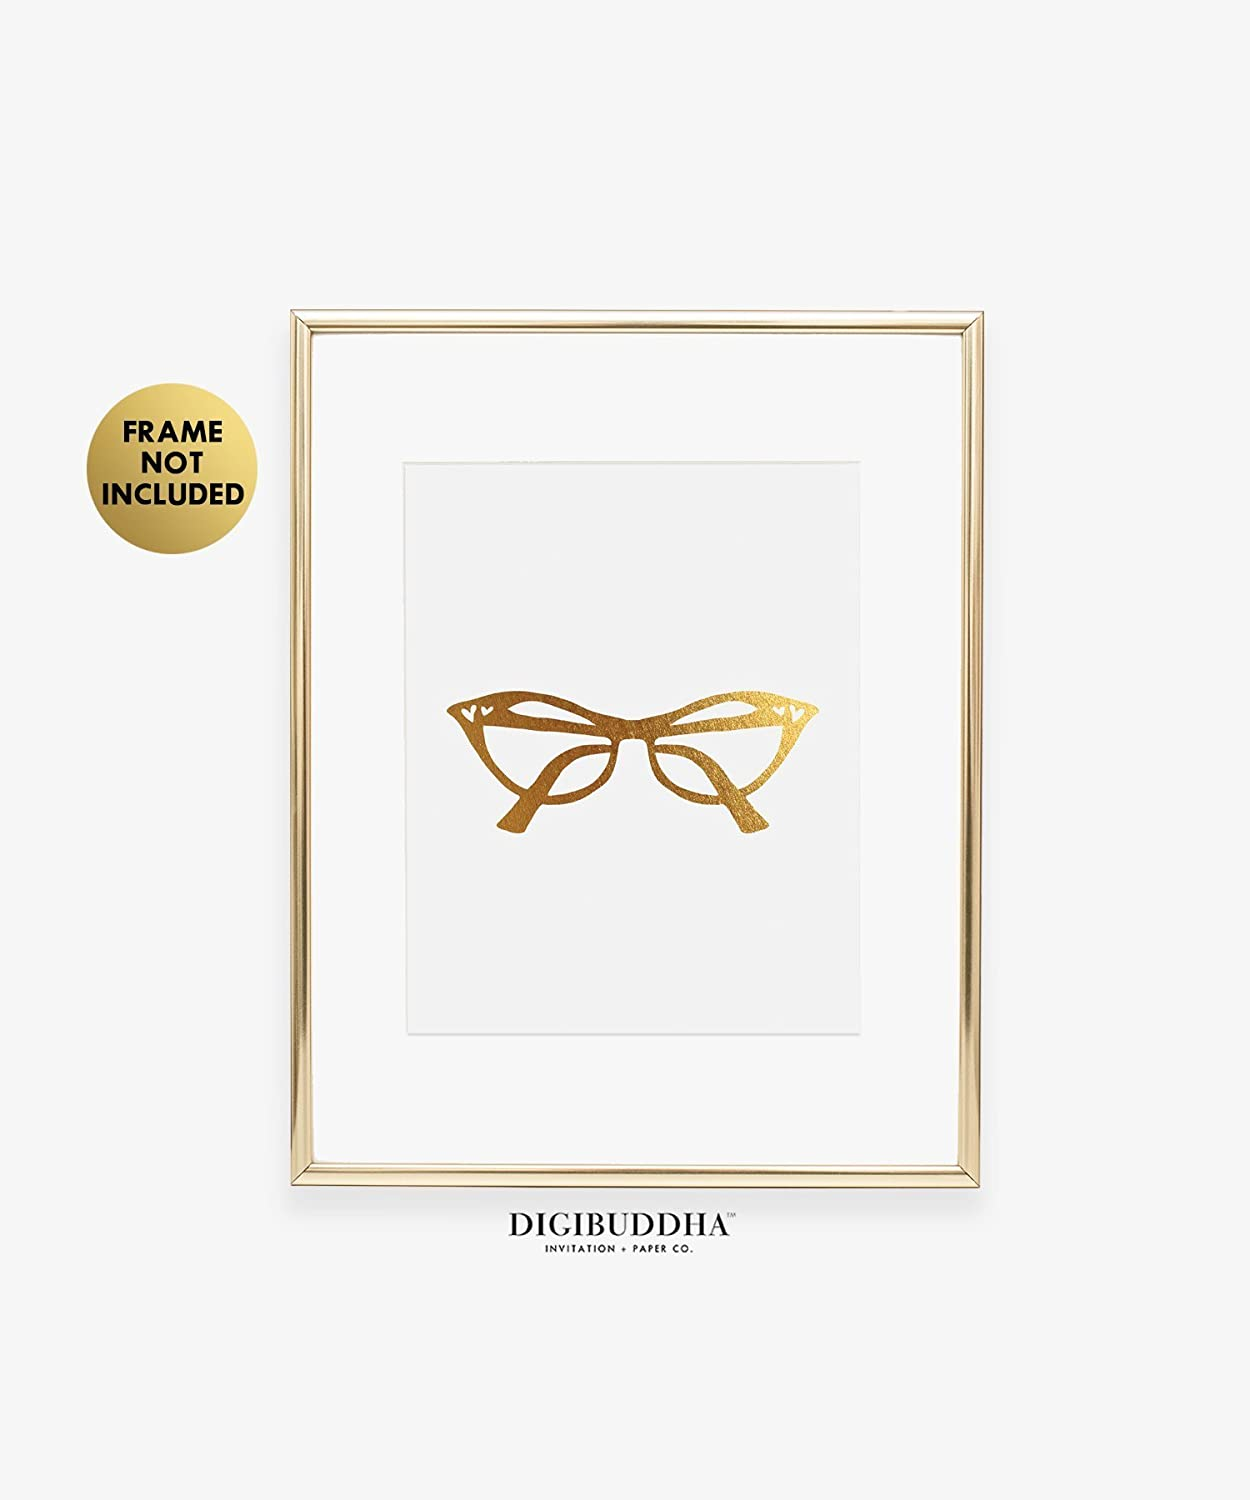 331b57187ddf Amazon.com: Cat Eye Glasses Gold Foil Vintage Print Fashion Poster Office  Glam Wall Art Room Decor 8 inches x 10 inches C44: Handmade